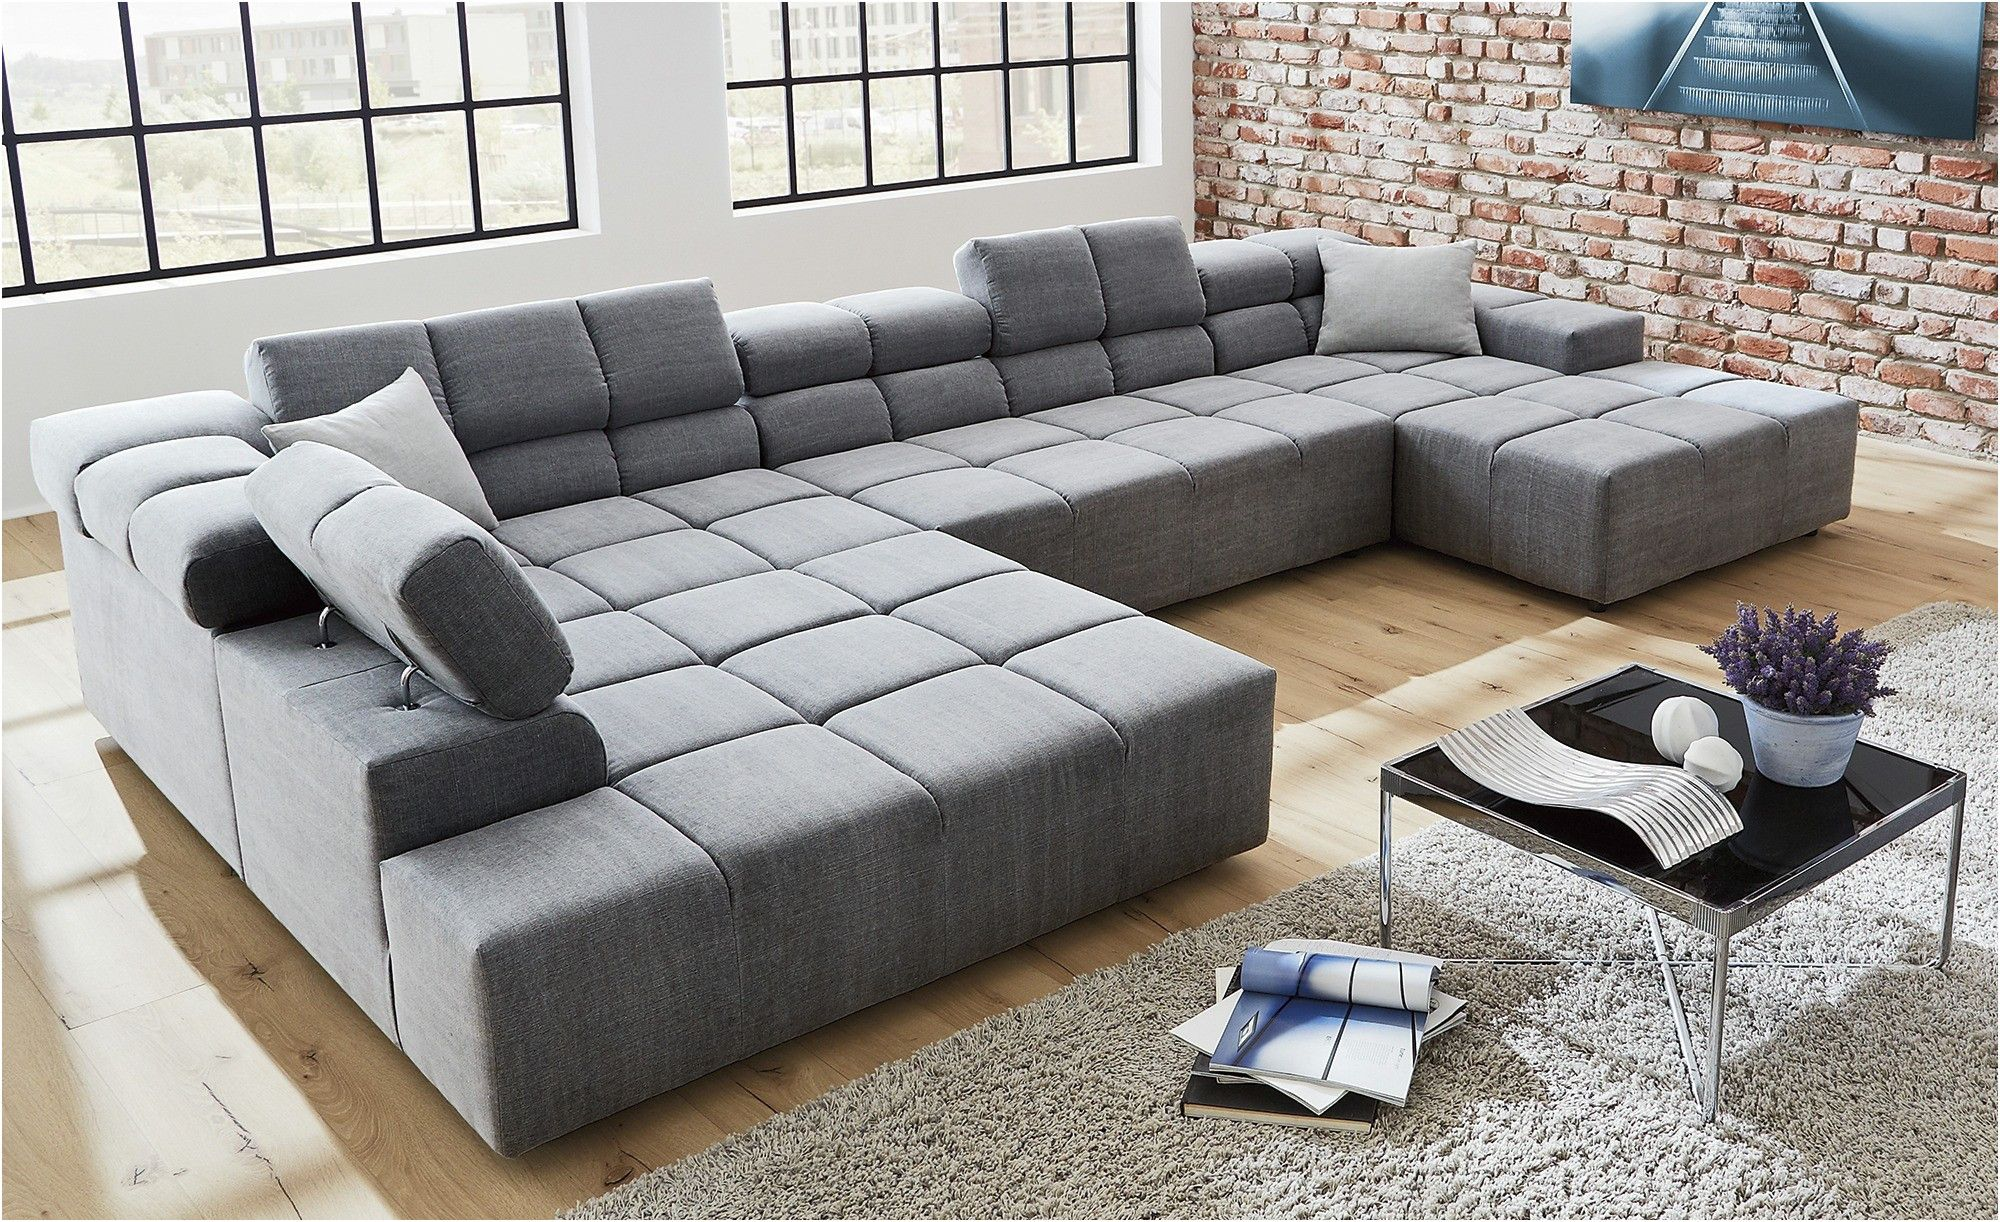 Big Sofa Xxl Wohnlandschaft Big Sofa U Form Full Size Furniture